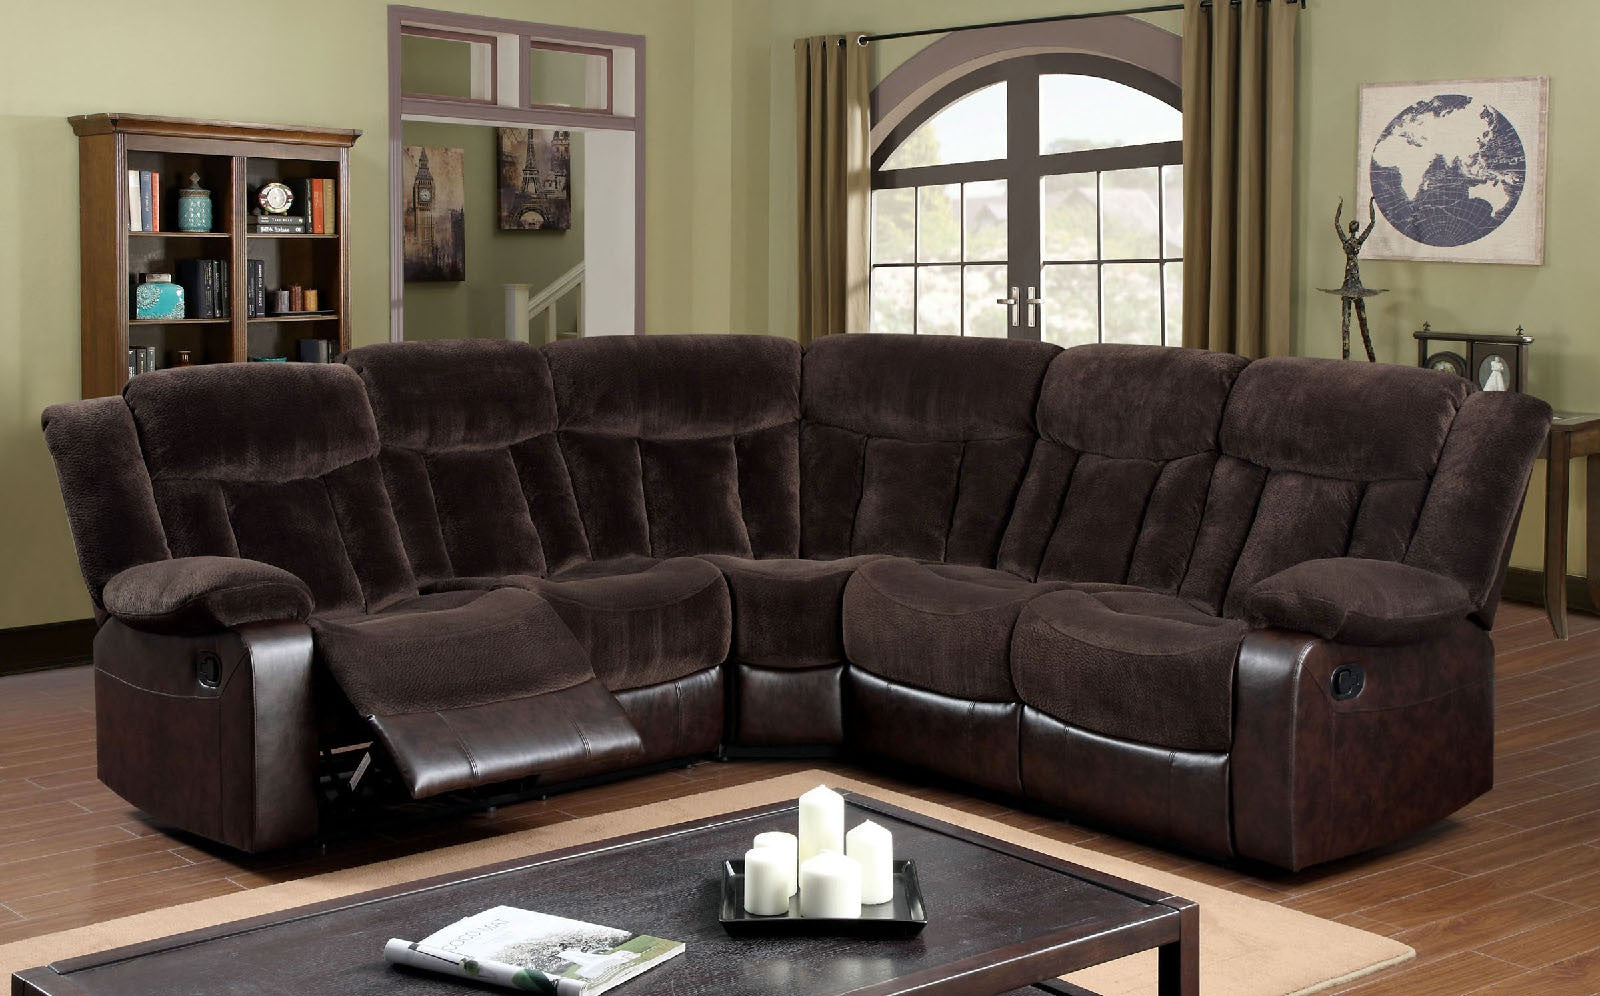 Hampshire Brown Transitional Champion Fabric Leatherette Sectional